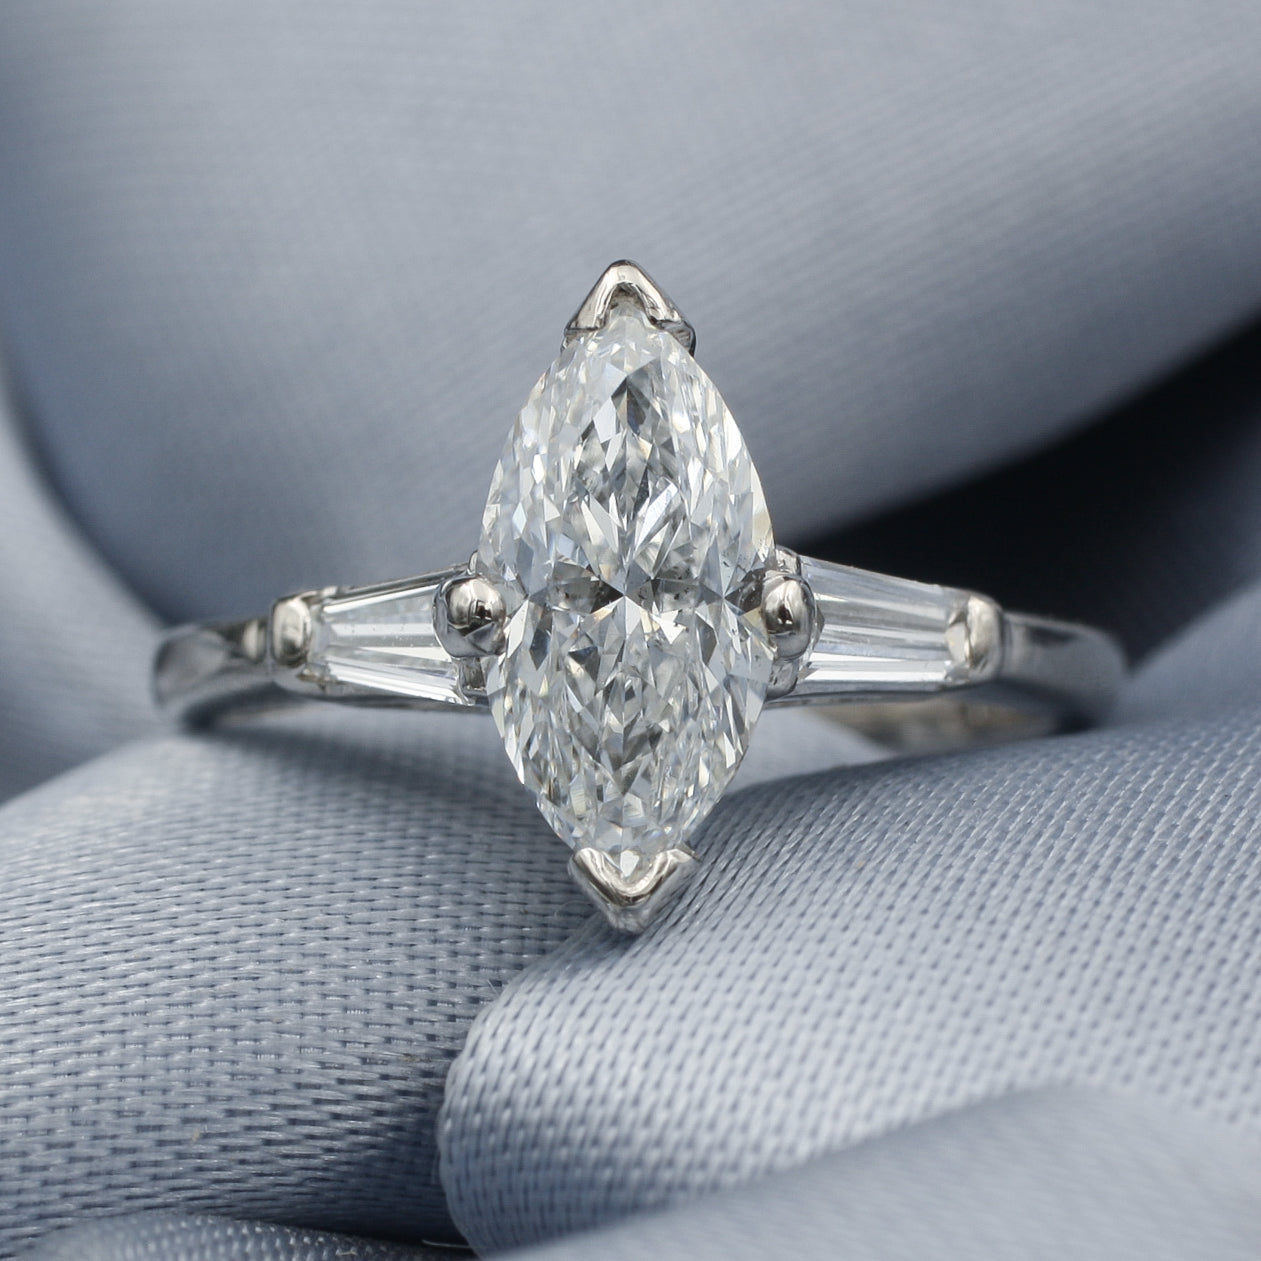 1.45 Carat Marquise Cut Diamond Ring c1950